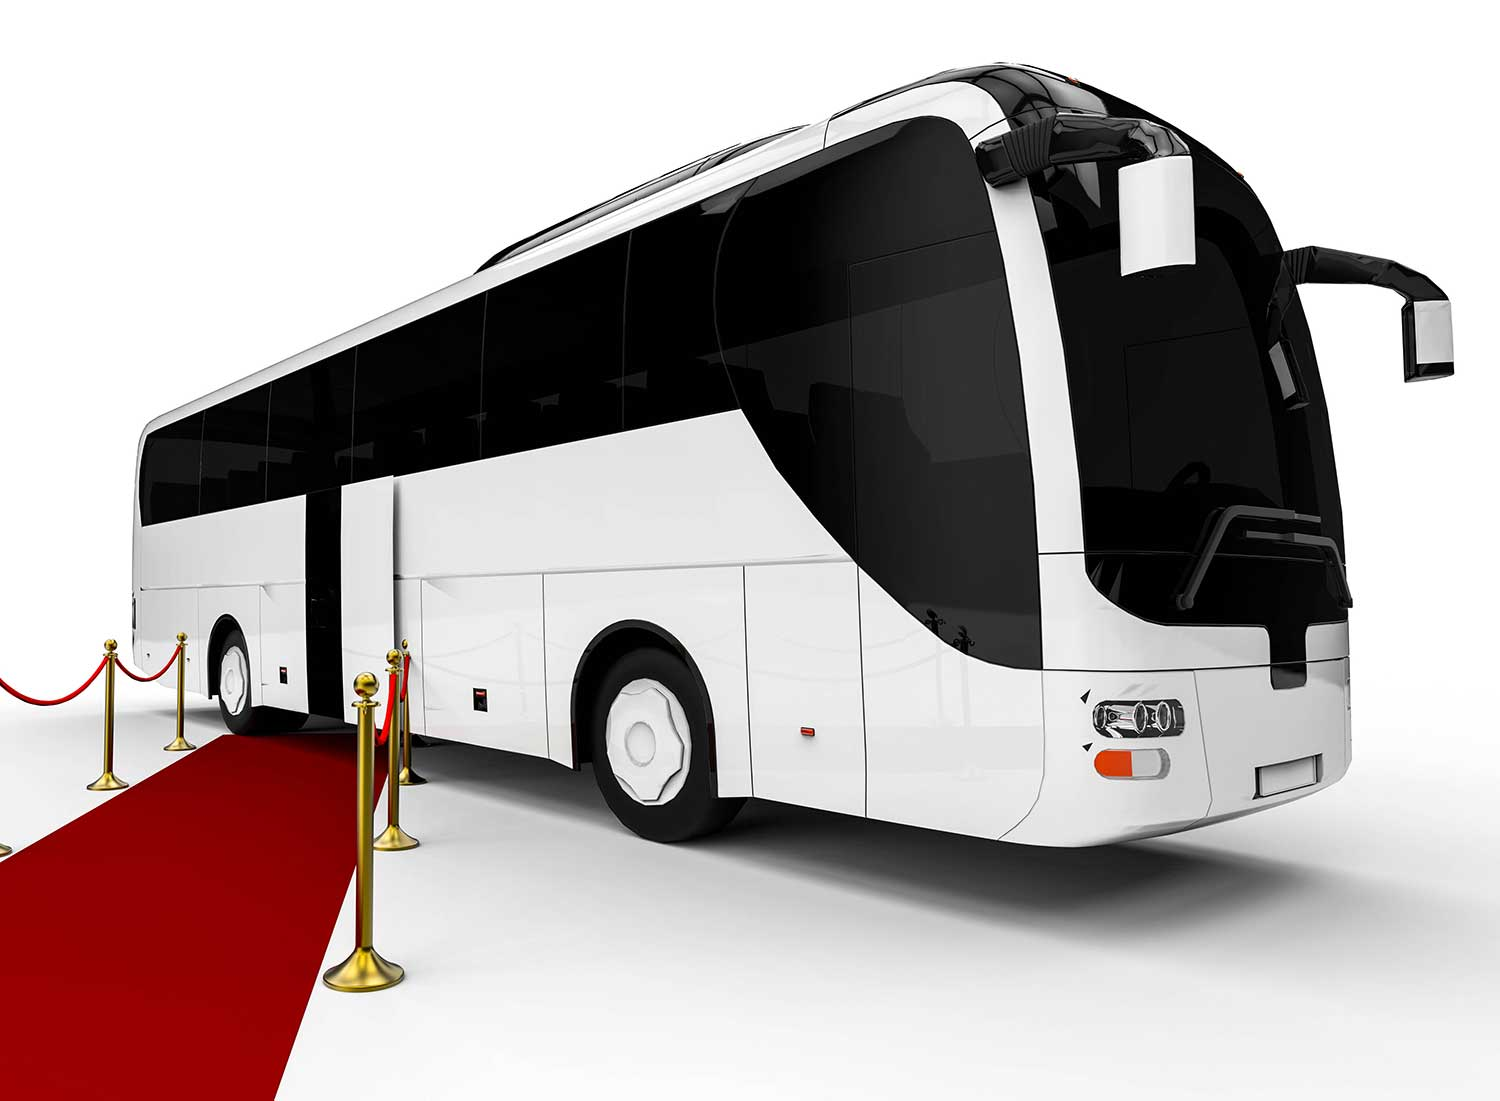 Clearwater Party Bus - Photo of a bus with a red carpet in front